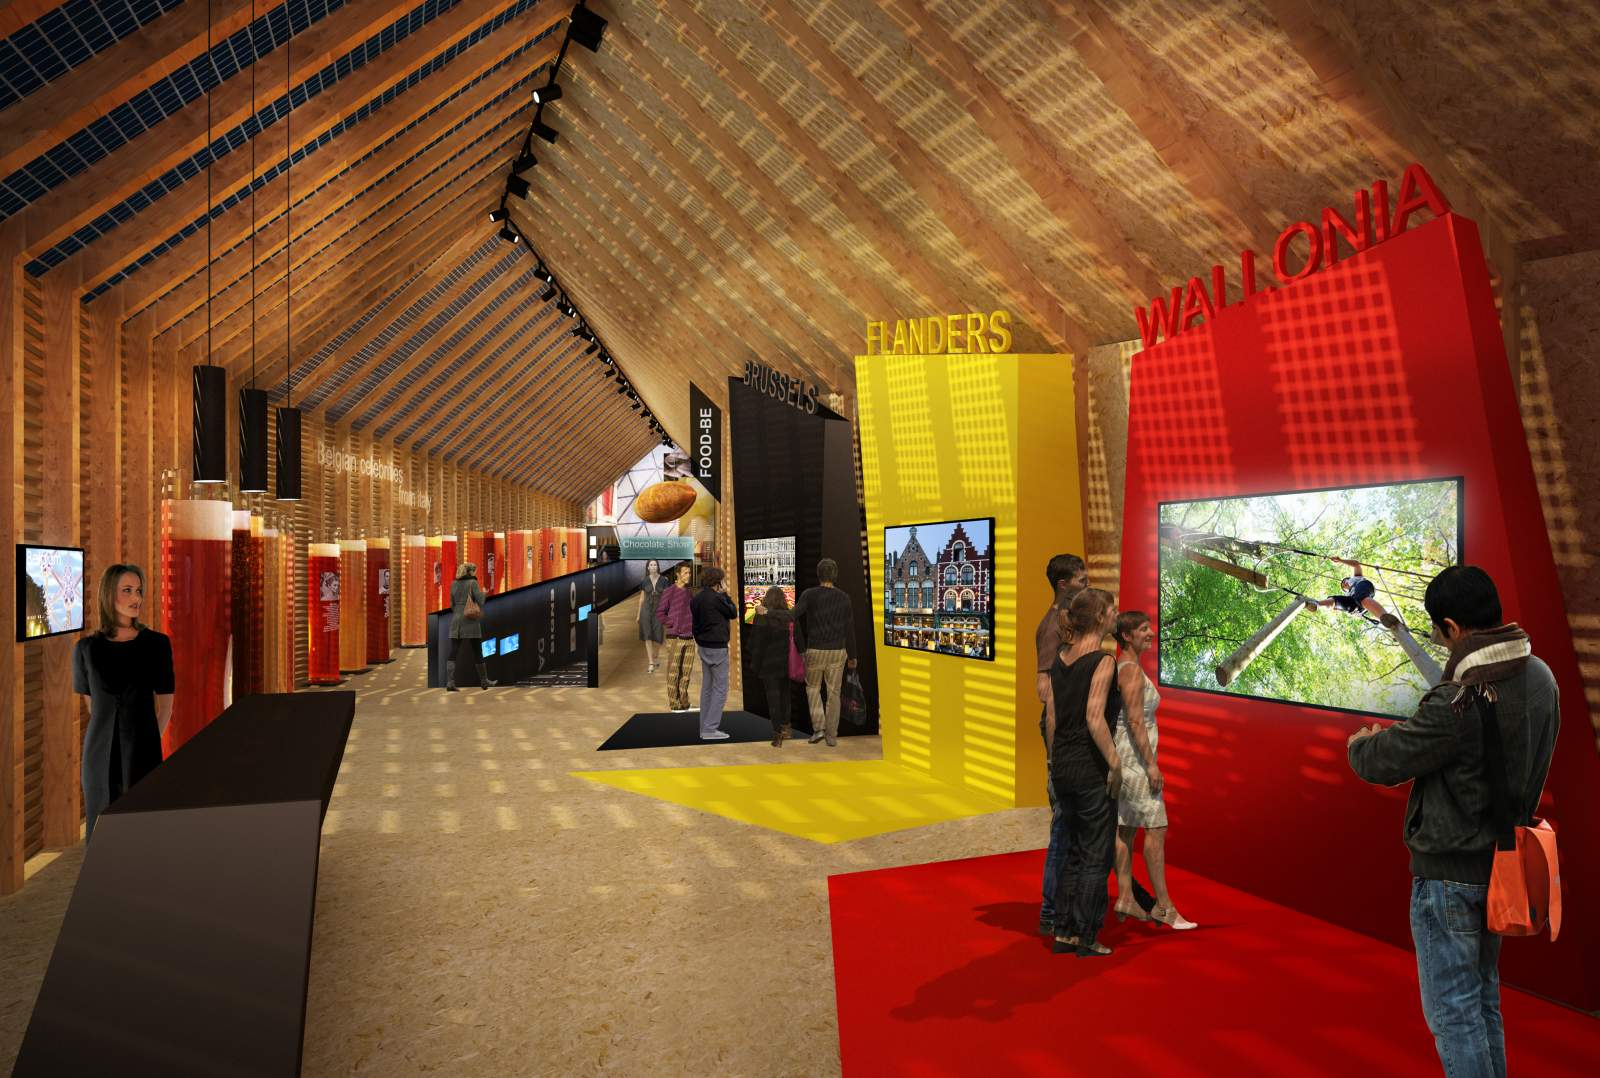 Belgium pavilion expo milano 2015 by patrick genard 11 for Home decor expo 2015